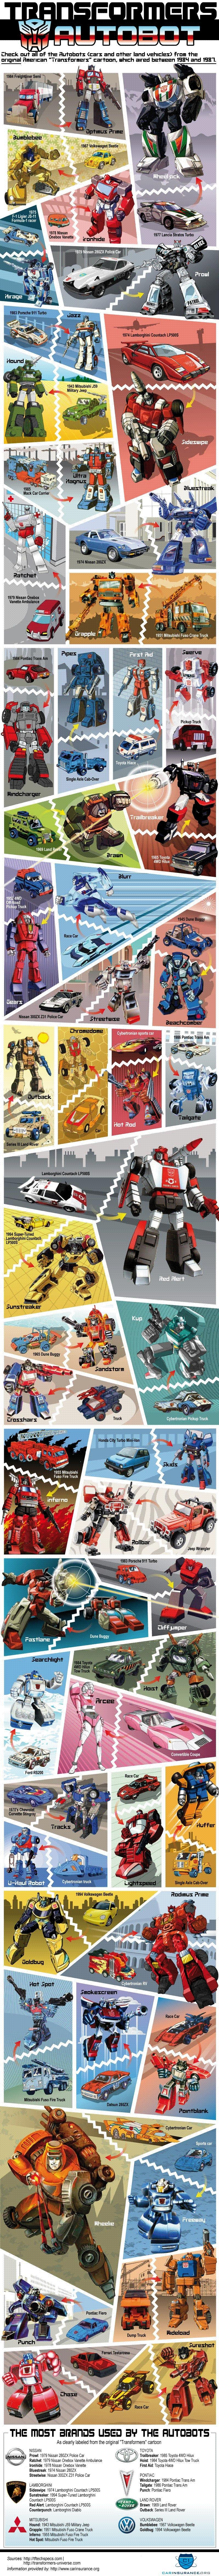 The Cars Behind The Original Transformers Autobots [Infographic] 1